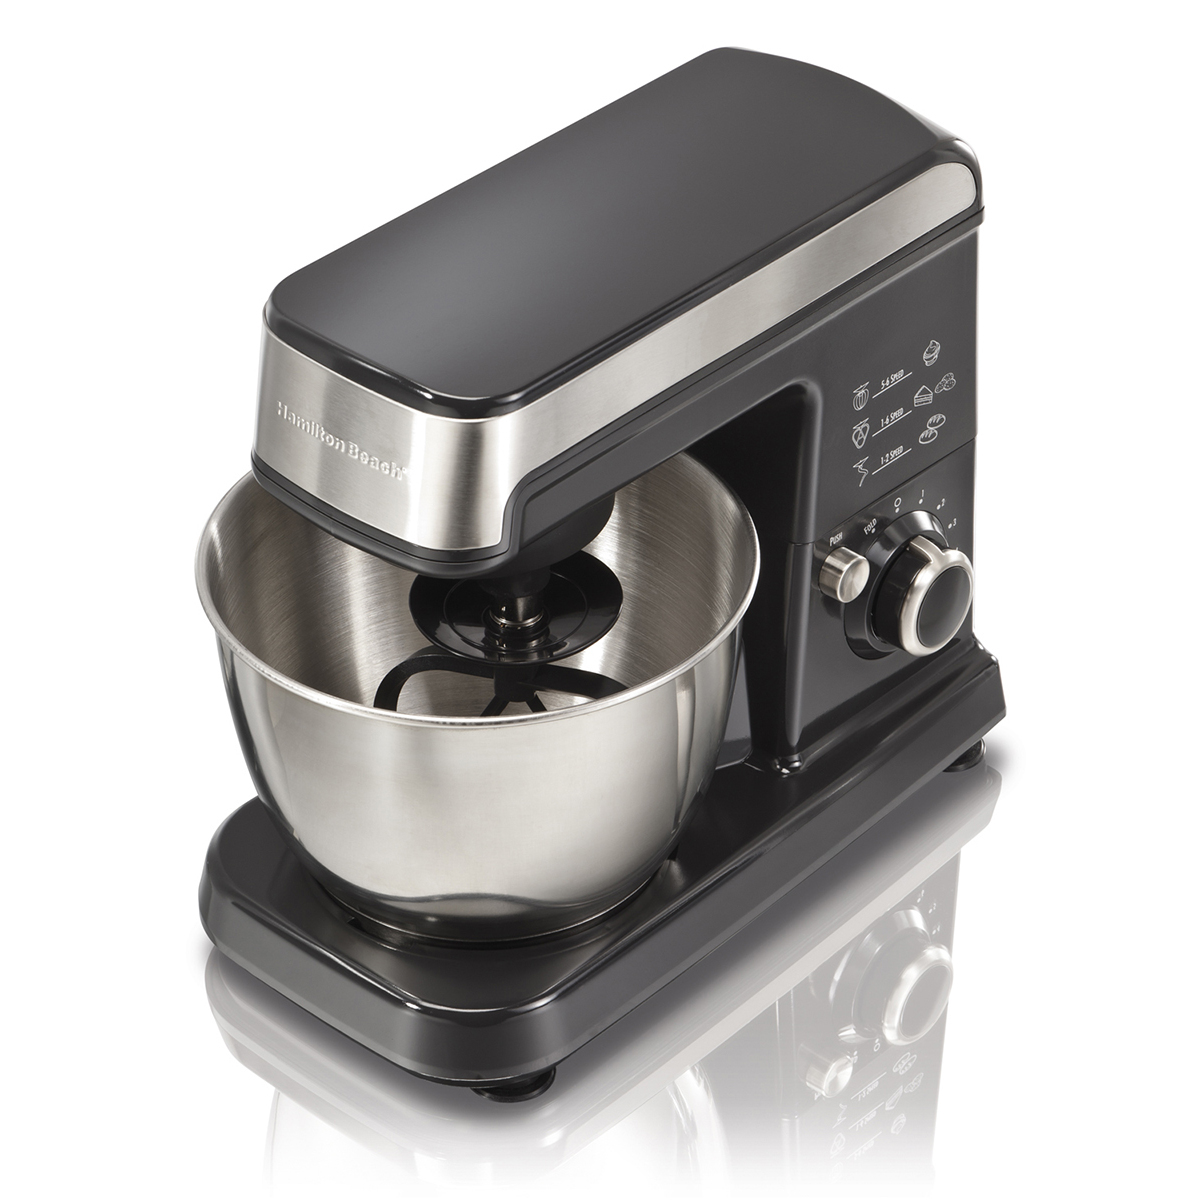 6 Speed Stand Mixer (63326)